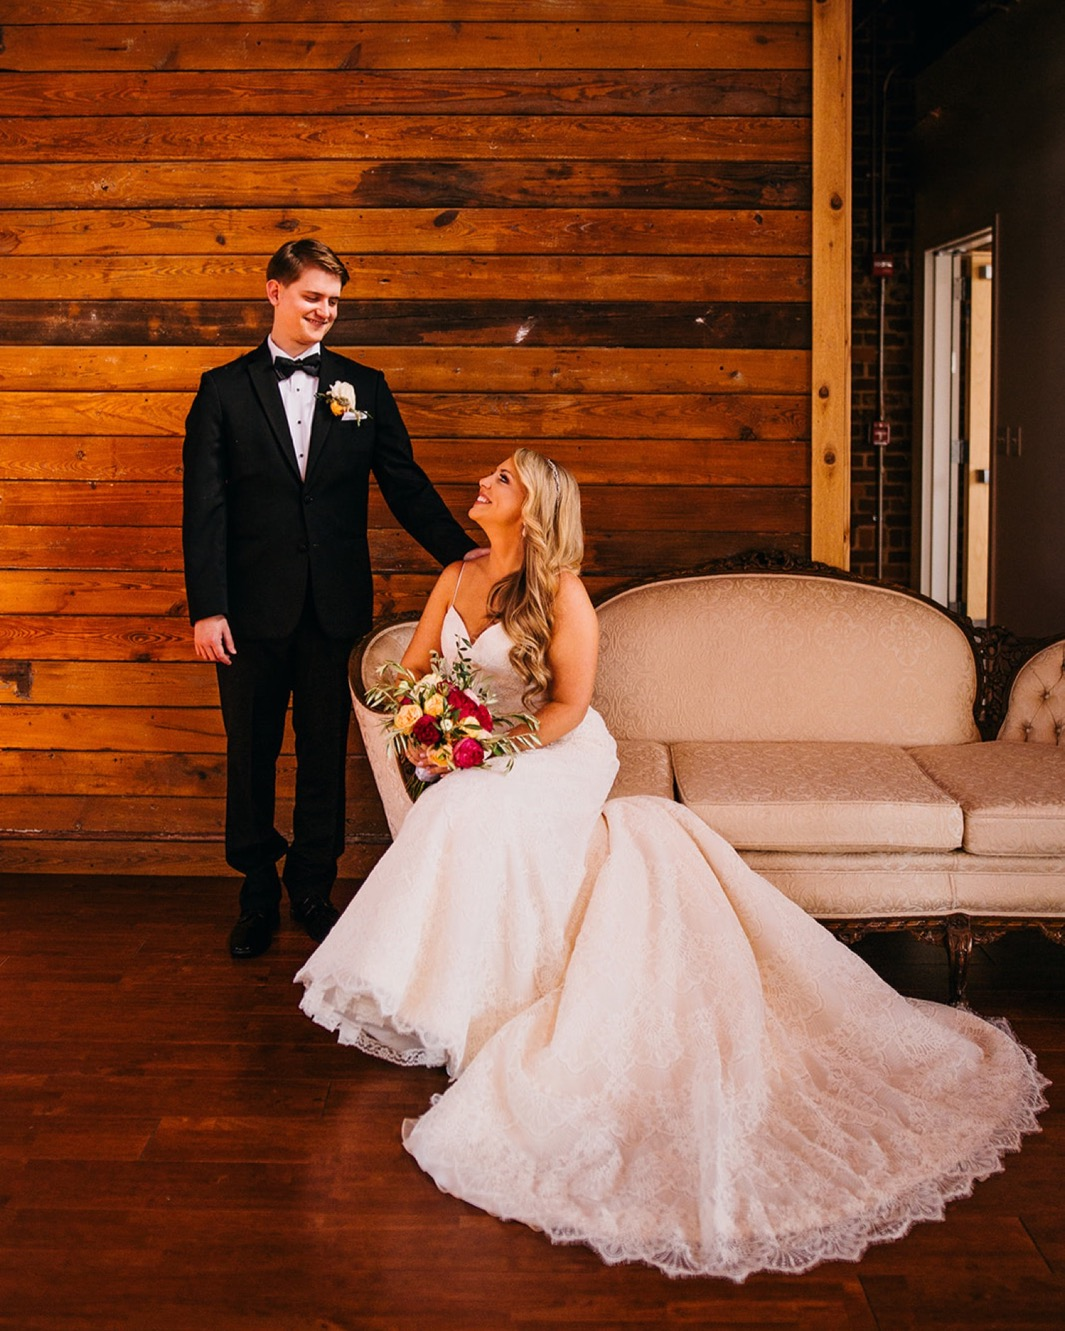 Bride sits on a chaise and smiles at the groom while the groom stands next to her.